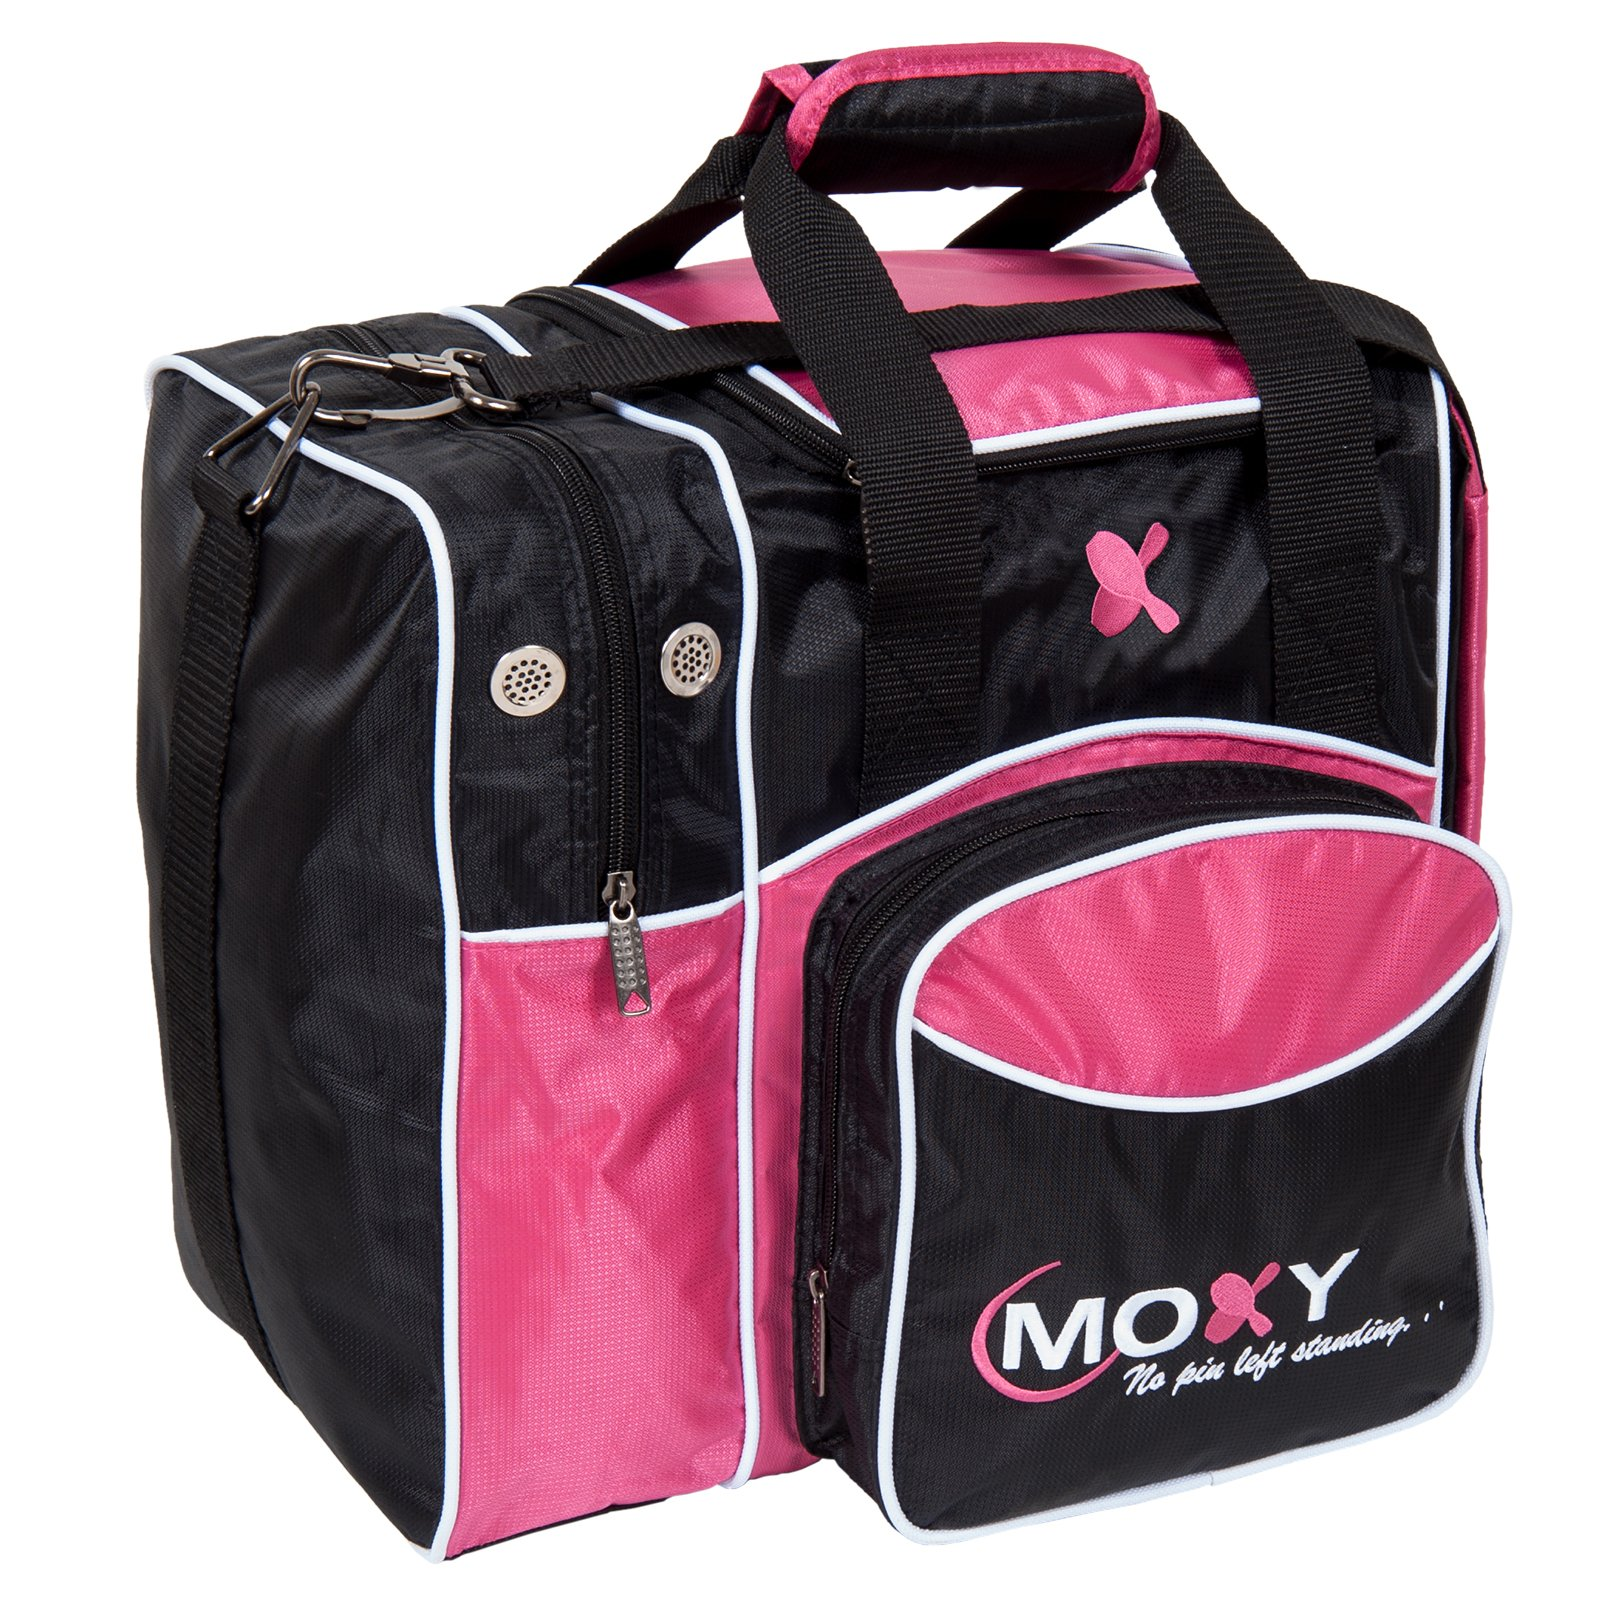 Moxy Bowling Products Single Deluxe Bowling Bag (Pink) by Moxy Bowling Products